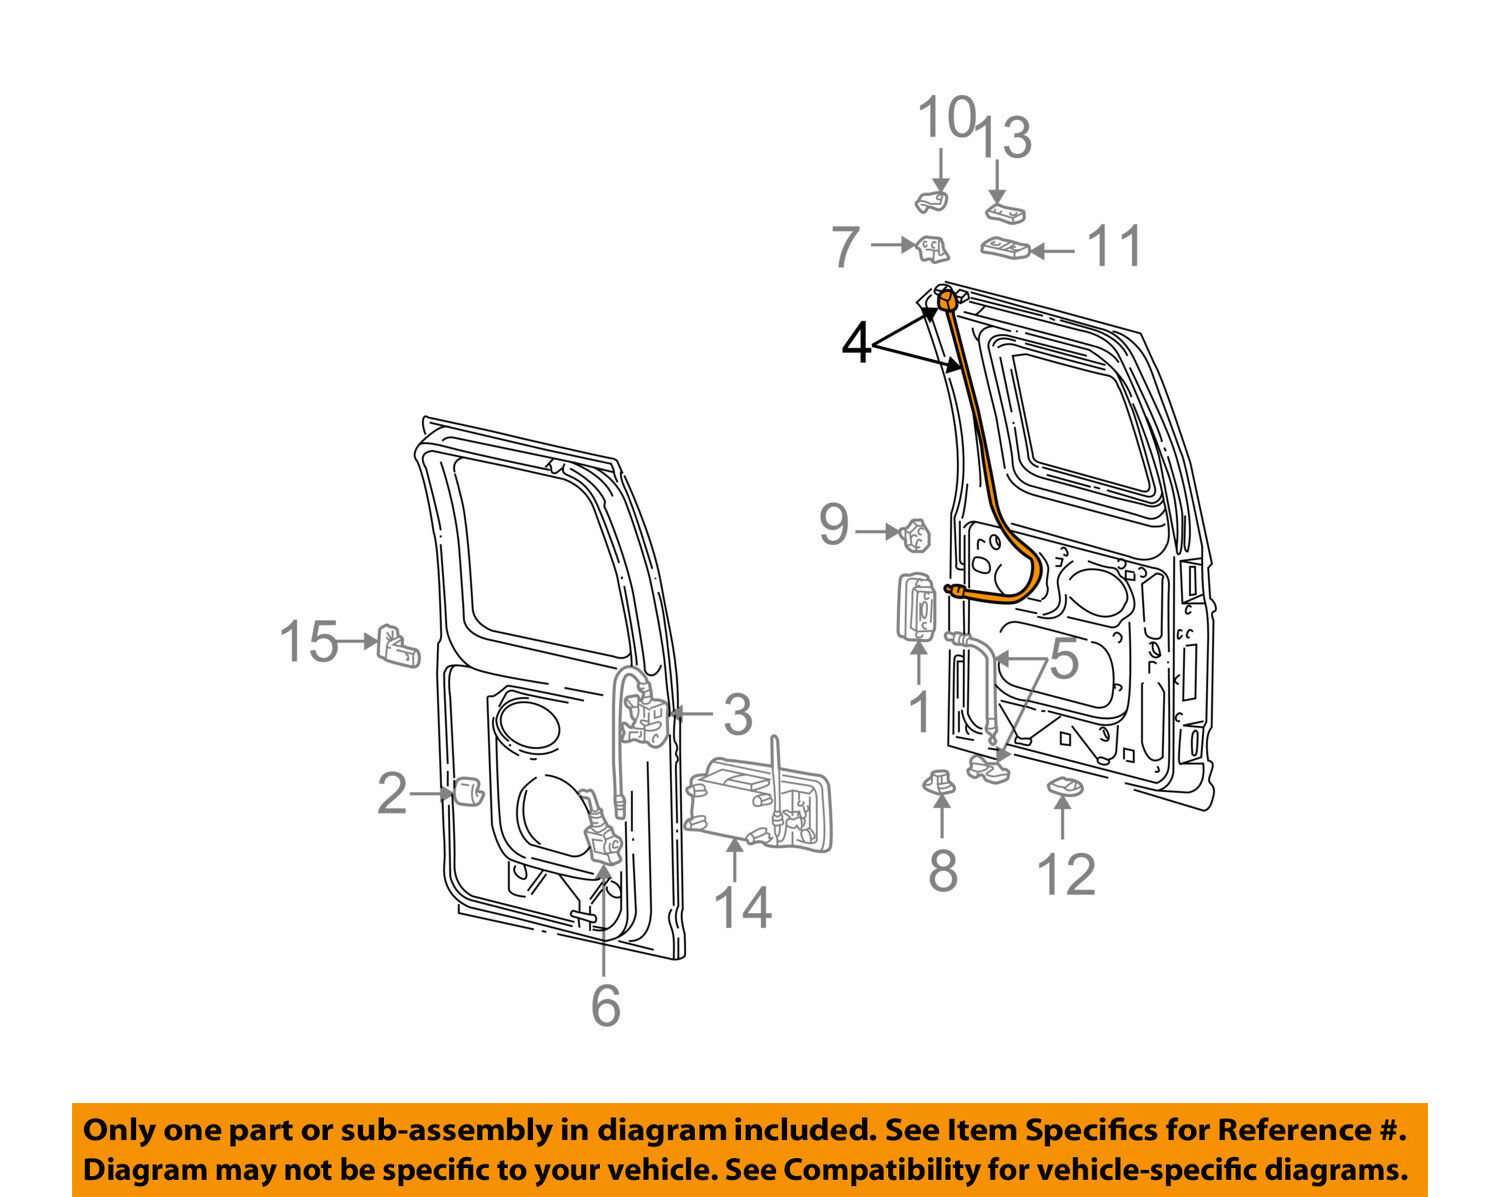 NEW OEM Genuine Ford Latch Rear Door LH 1992-2003 E150 E250 6C2Z1543286AA